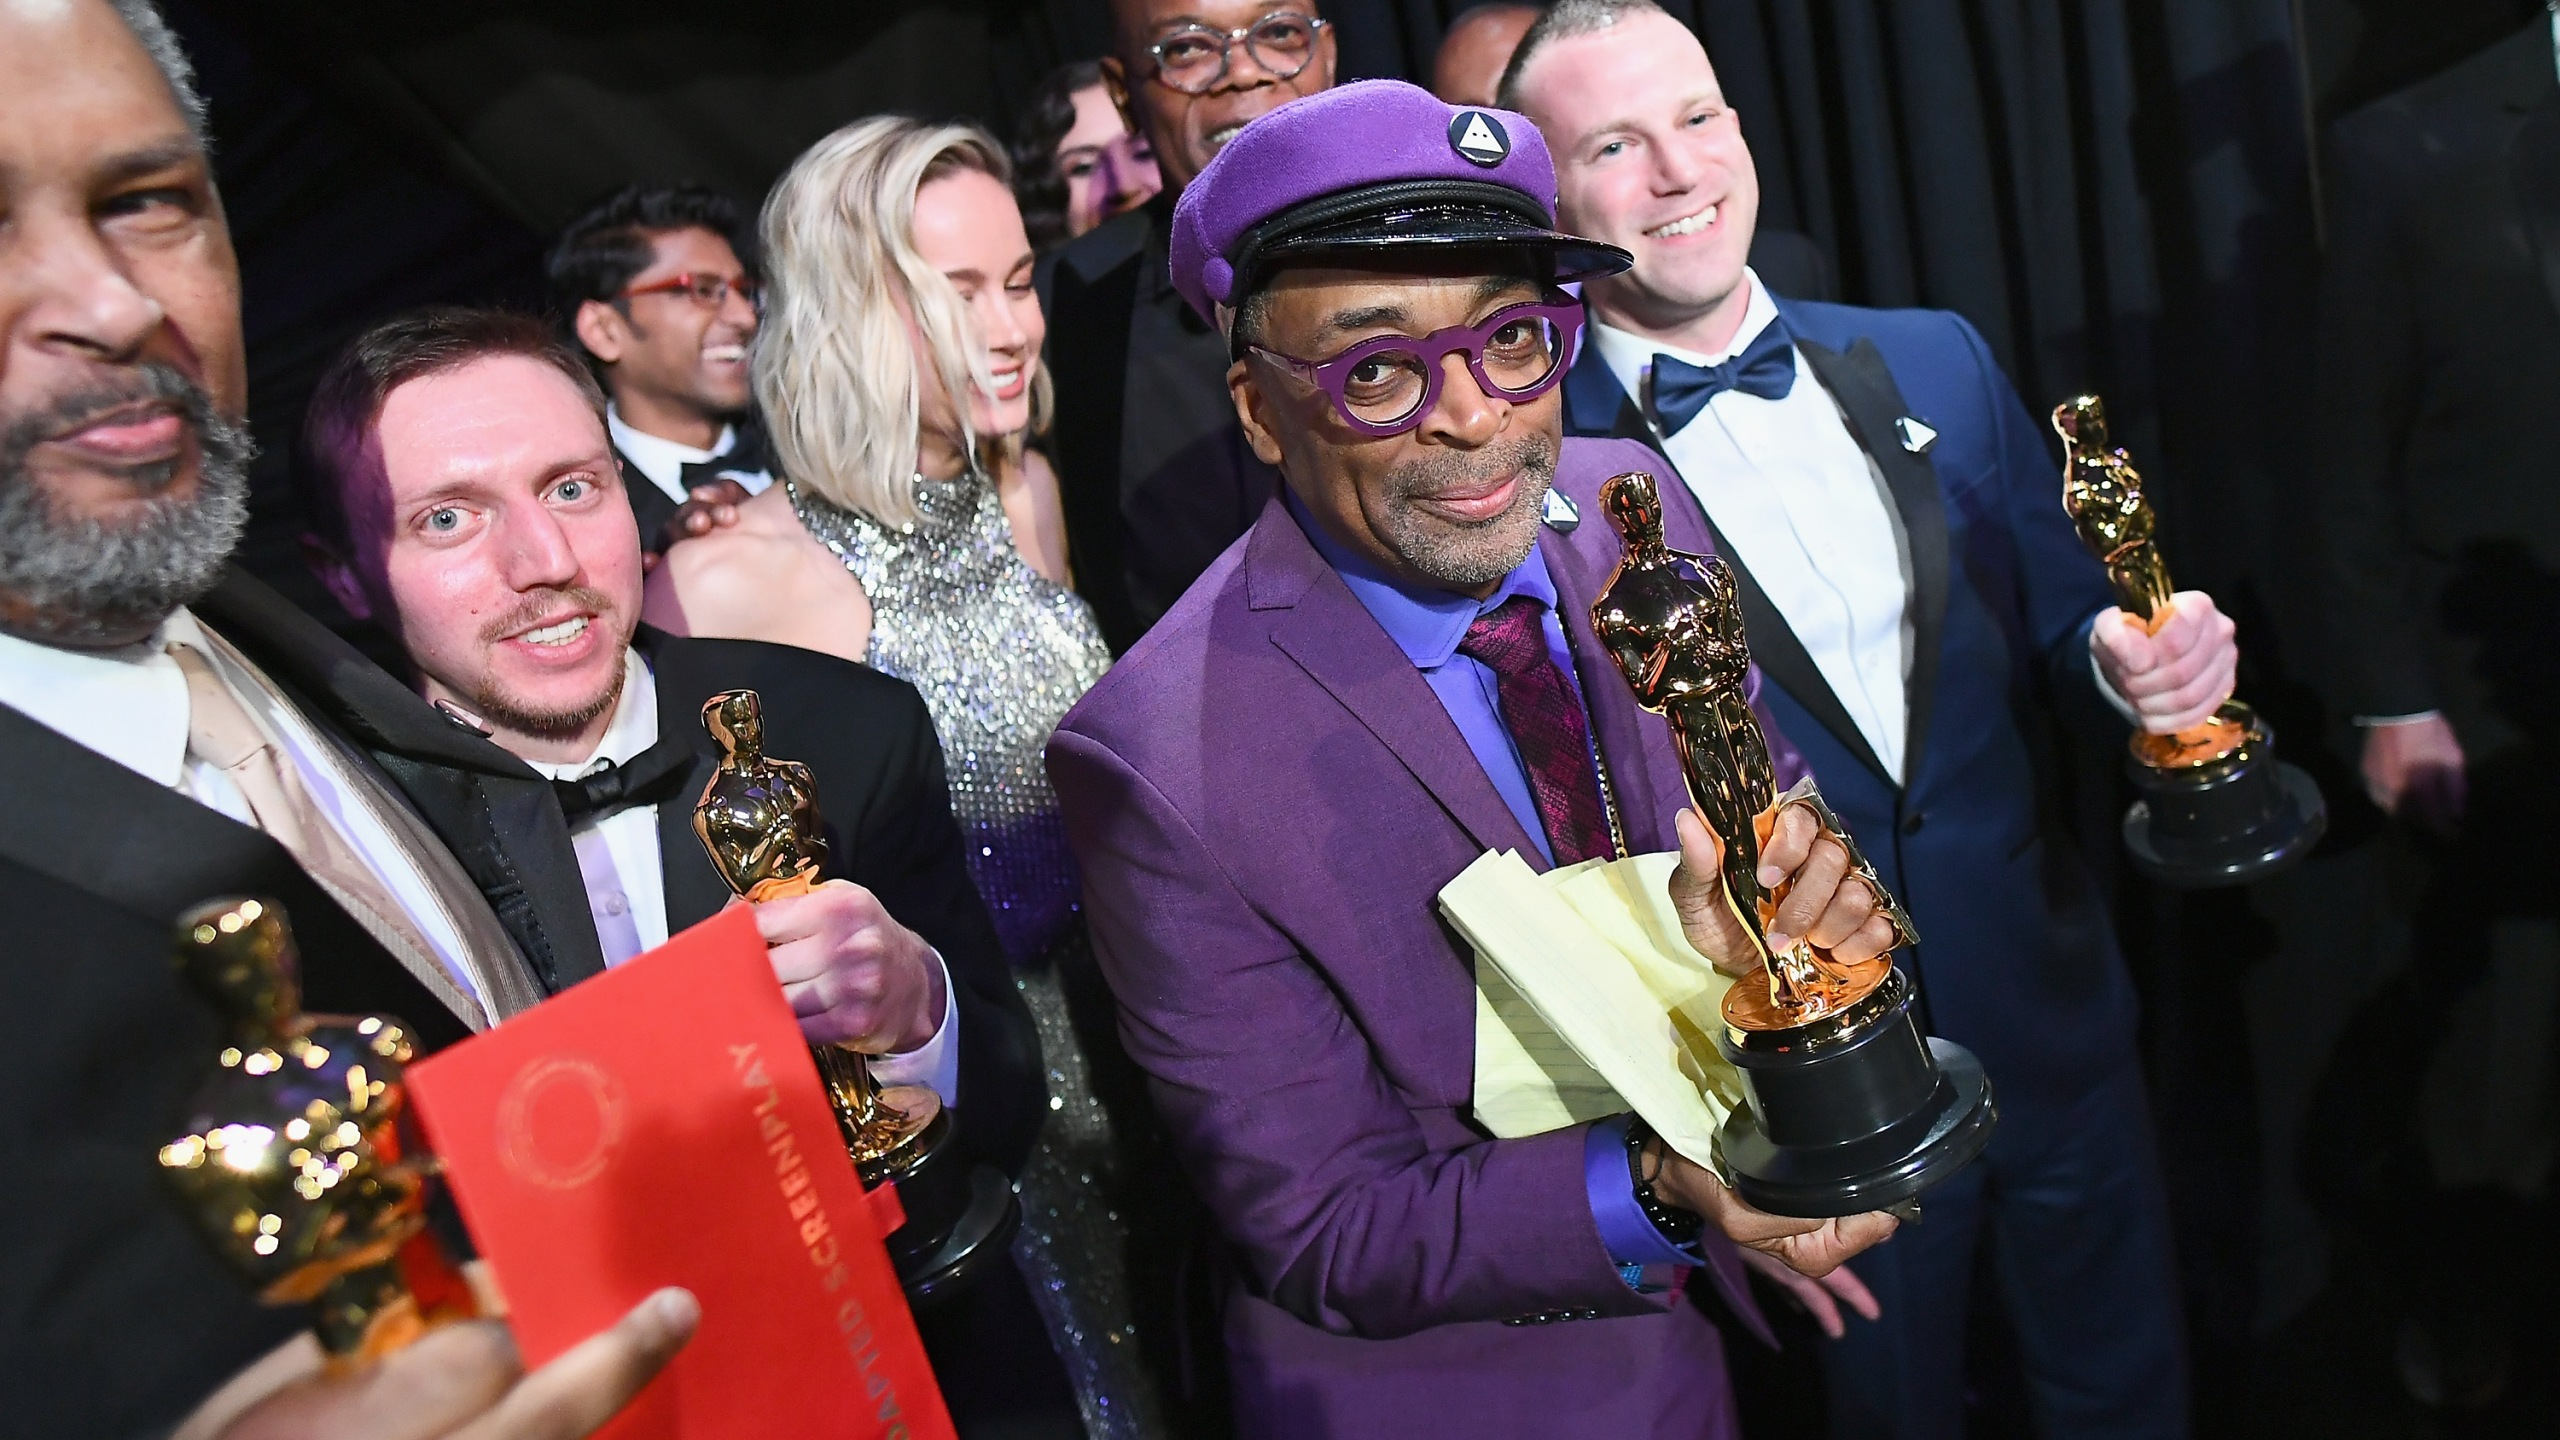 """In this handout provided by A.M.P.A.S., Spike Lee (second from right), pose with the Best Adapted Screenplay award for """"BlacKkKlansman"""" backstage during the 91st Annual Academy Awards at the Dolby Theatre on Feb. 24, 2019 in Hollywood. (Credit: Matt Petit - Handout/A.M.P.A.S. via Getty Images)"""